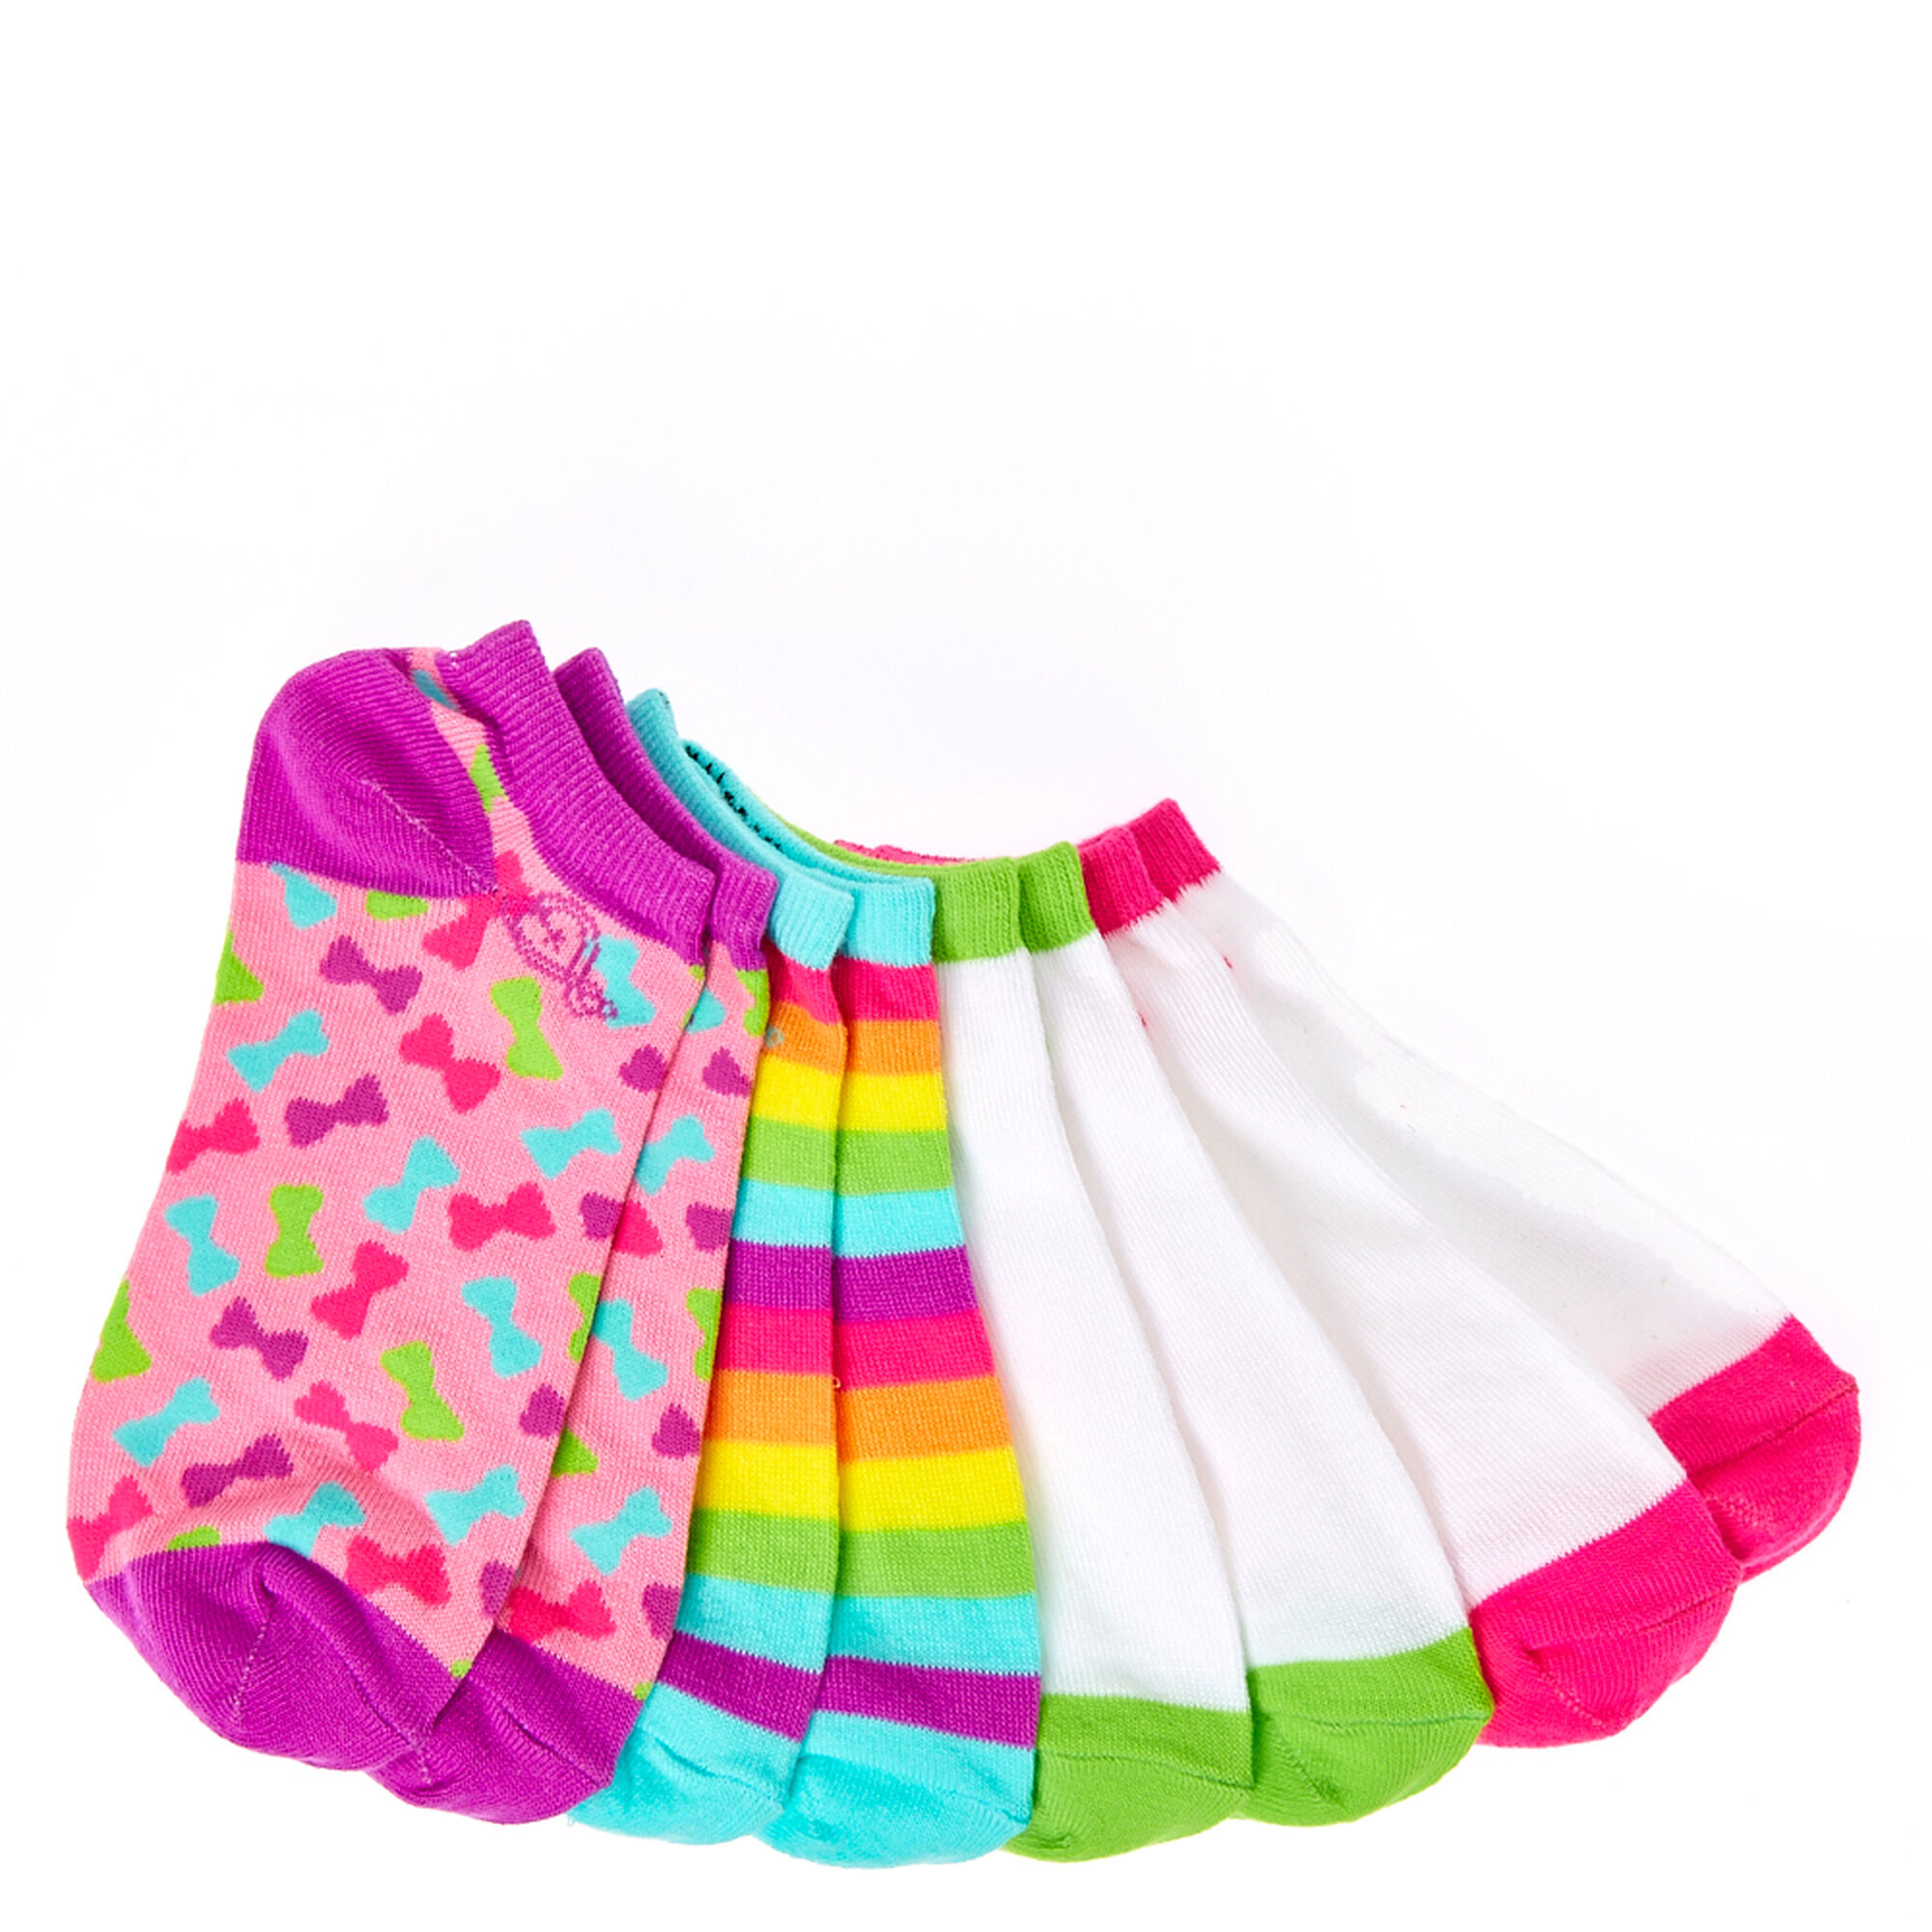 JoJo Siwa 4 Pack Ankle Socks | Claire's US